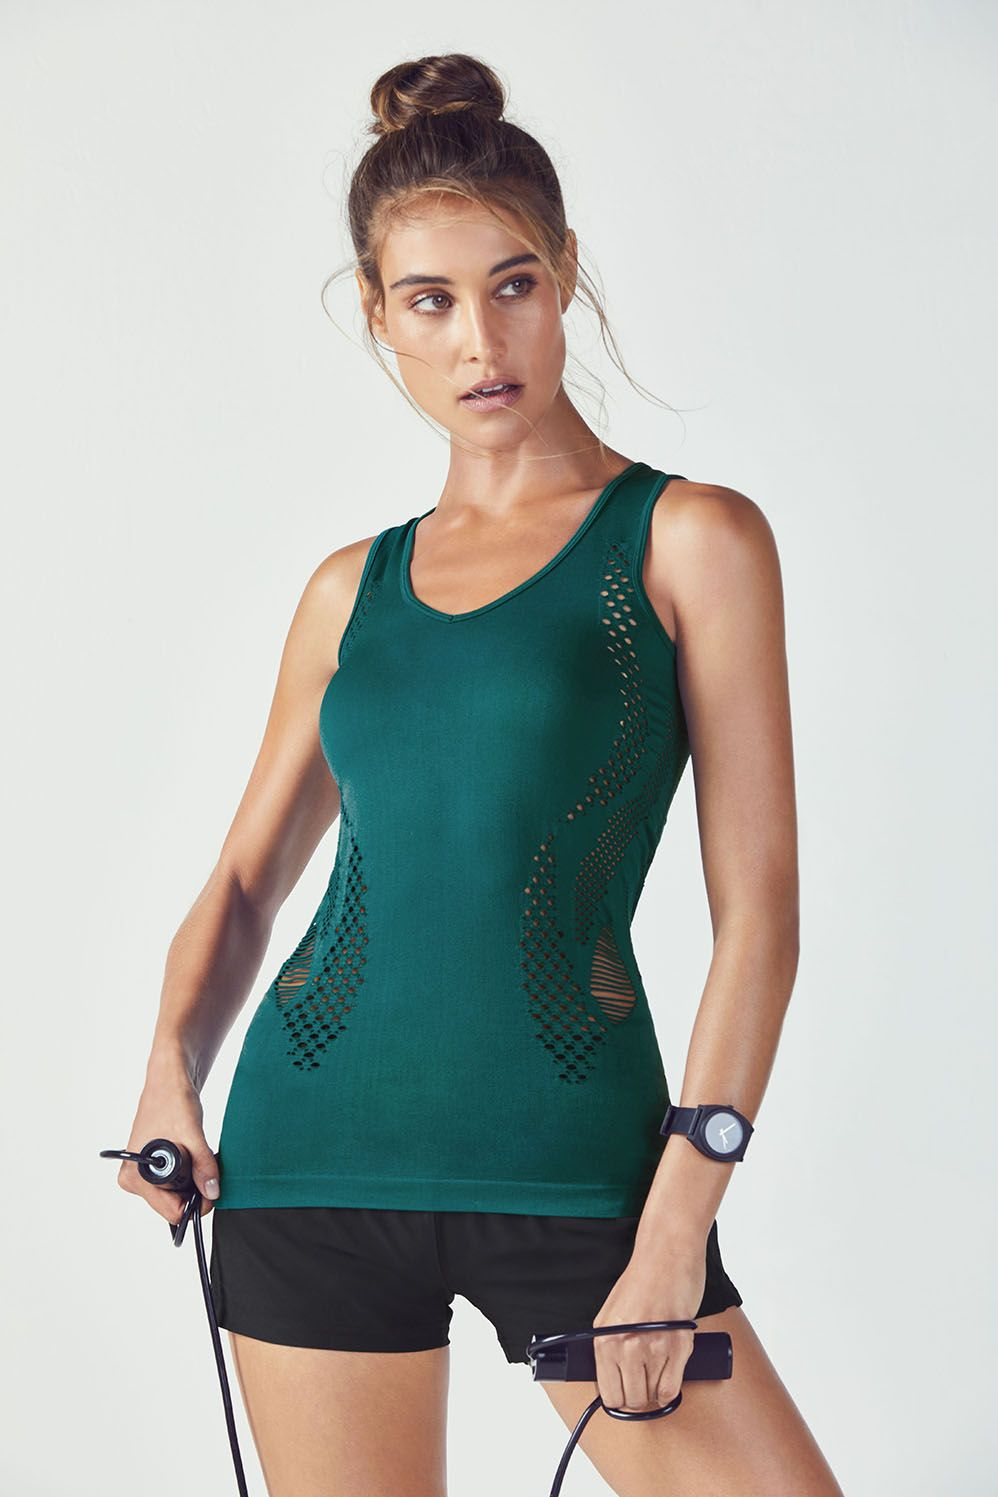 Jacqueline - Fabletics FitnessApparelExpress.com ♡ Women's Workout Clothes | Yoga Tops | Sports Bra | Yoga Pants | Motivation is here! | Fitness Apparel | Express Workout Clothes for Women | #fitness #express #yogaclothing #exercise #yoga. #yogaapparel #fitness #diet #fit #leggings #abs #workout #weight